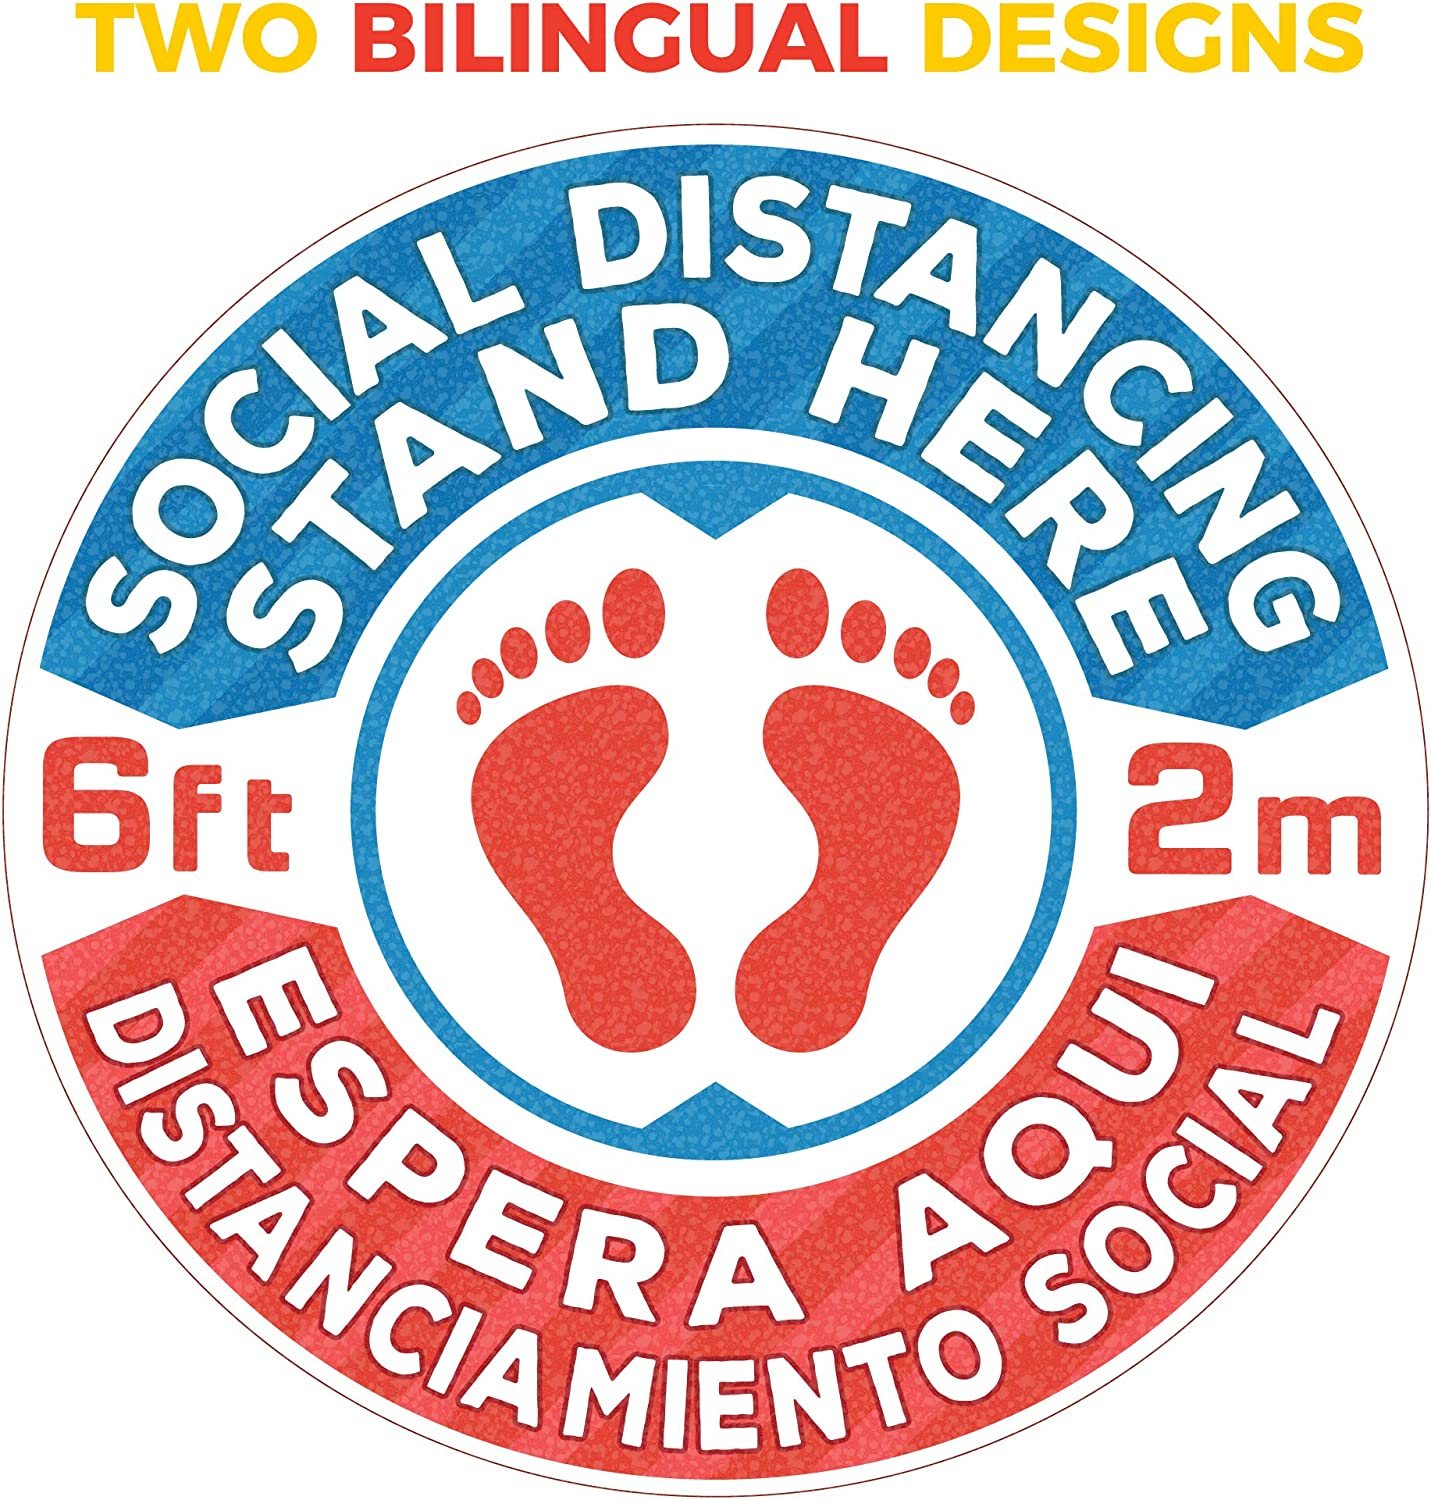 USA Large Safety Floor Sign Markers for Crowd Control Guidance DuroSigns Premium Bilingual Social Distancing Floor Carpet Signs Stickers 16 6-Pack